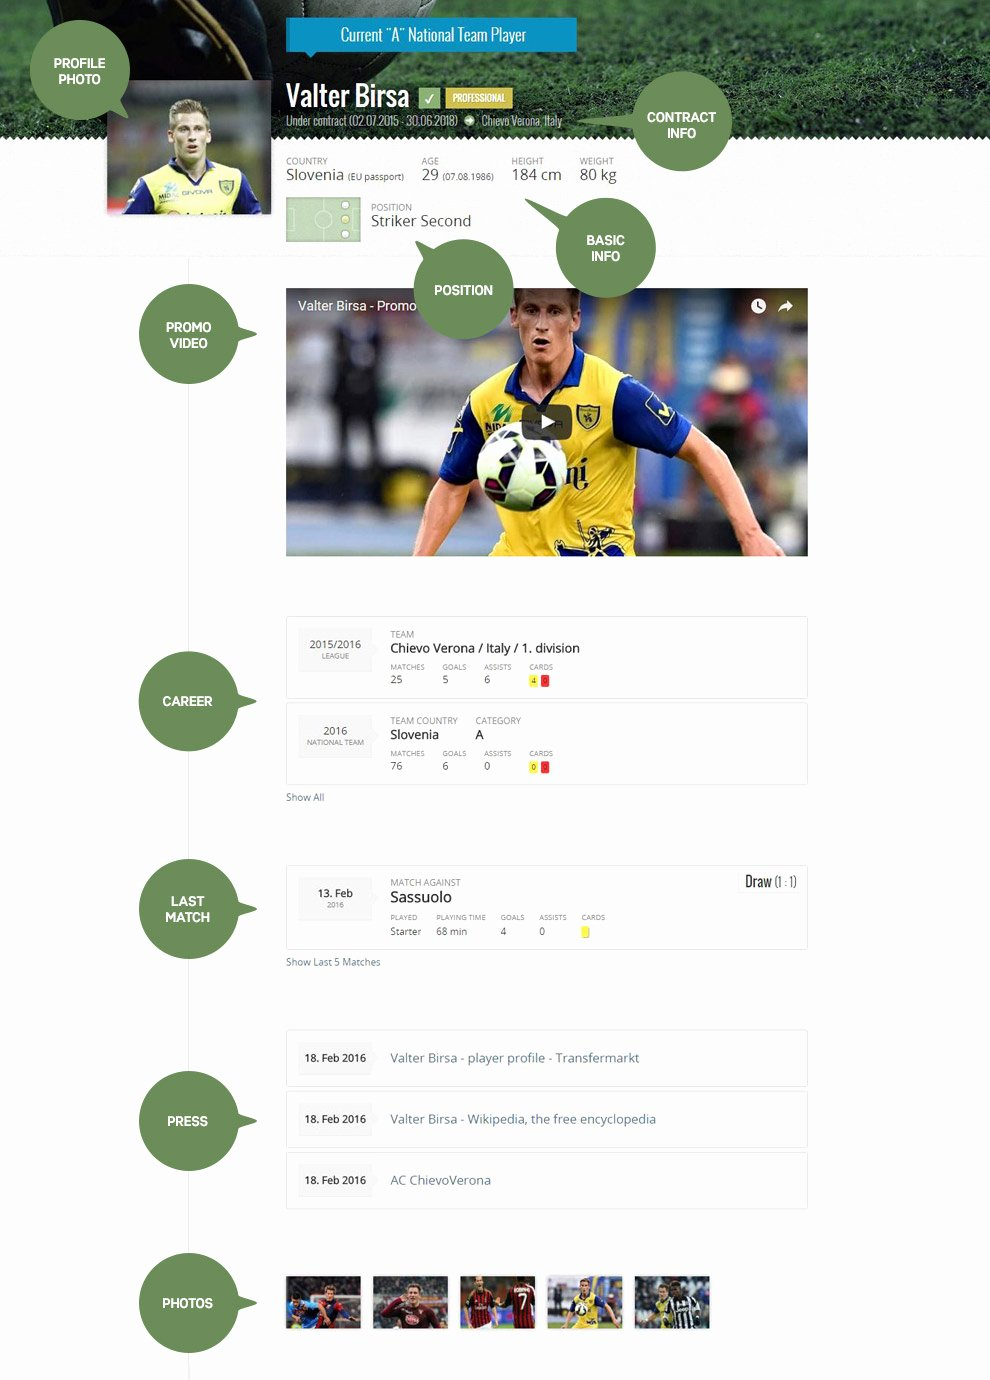 Soccer Players Profile Template Inspirational soccer Player Profile Templates 4 2 3 1 formation